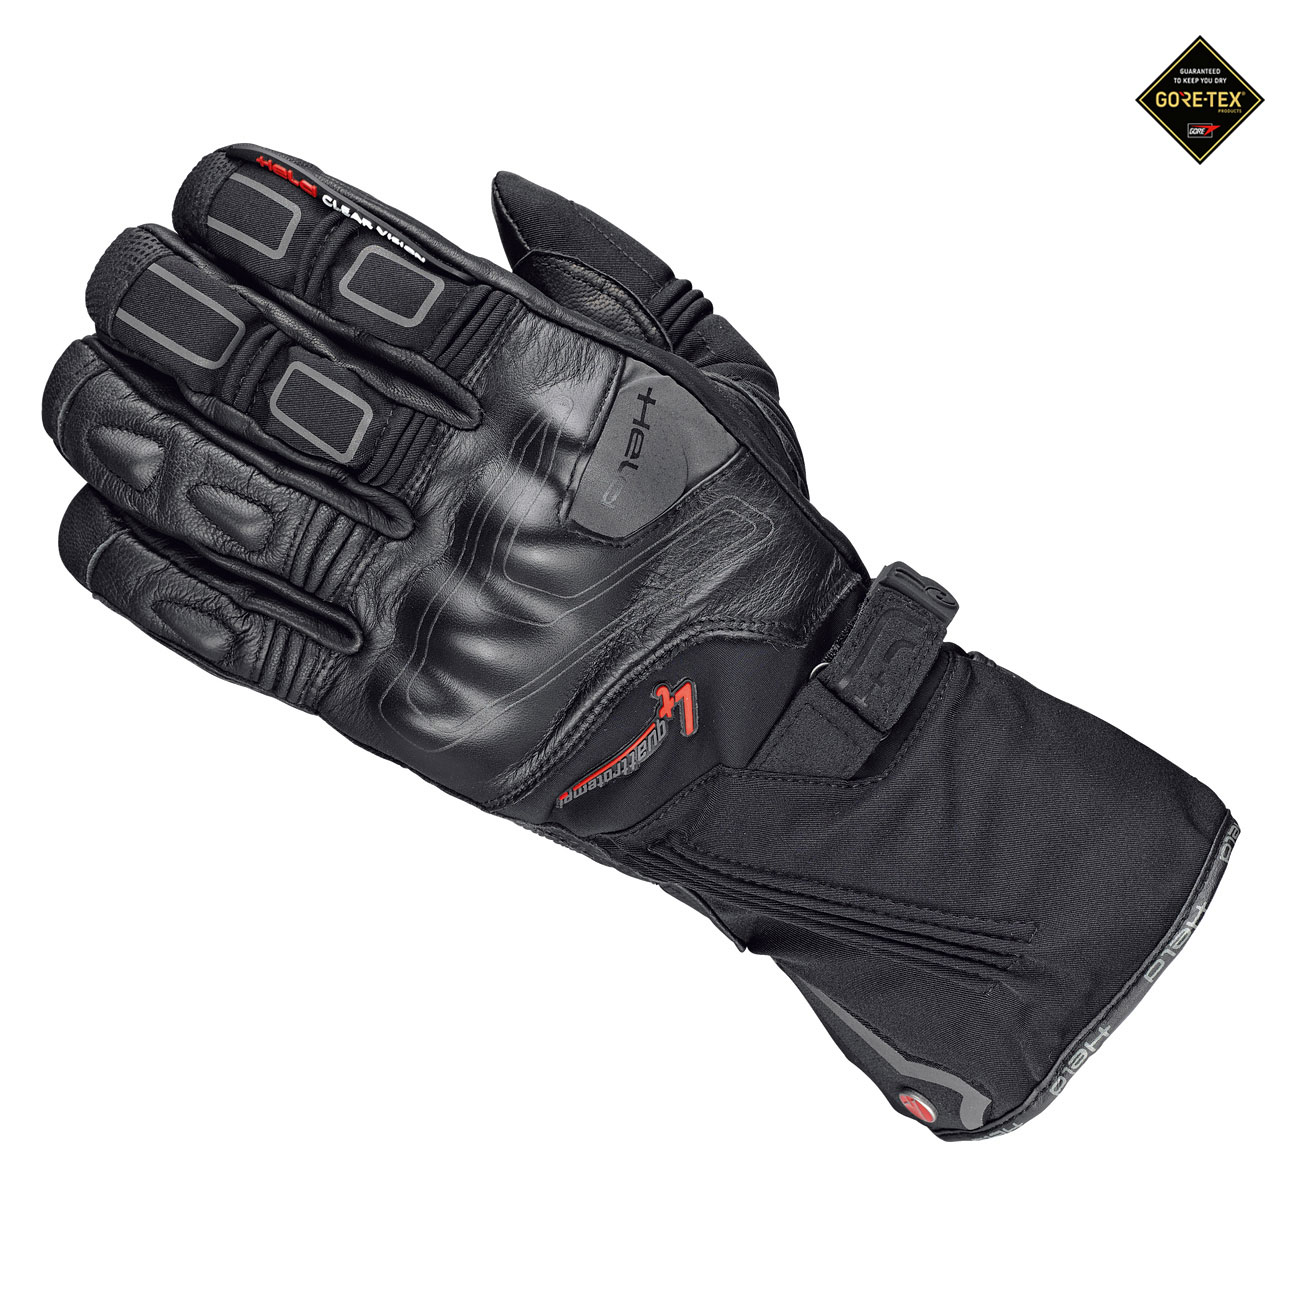 Held Cold Champ Gore-Tex + Gore Grip Technology Guantes De Moto Negro 7